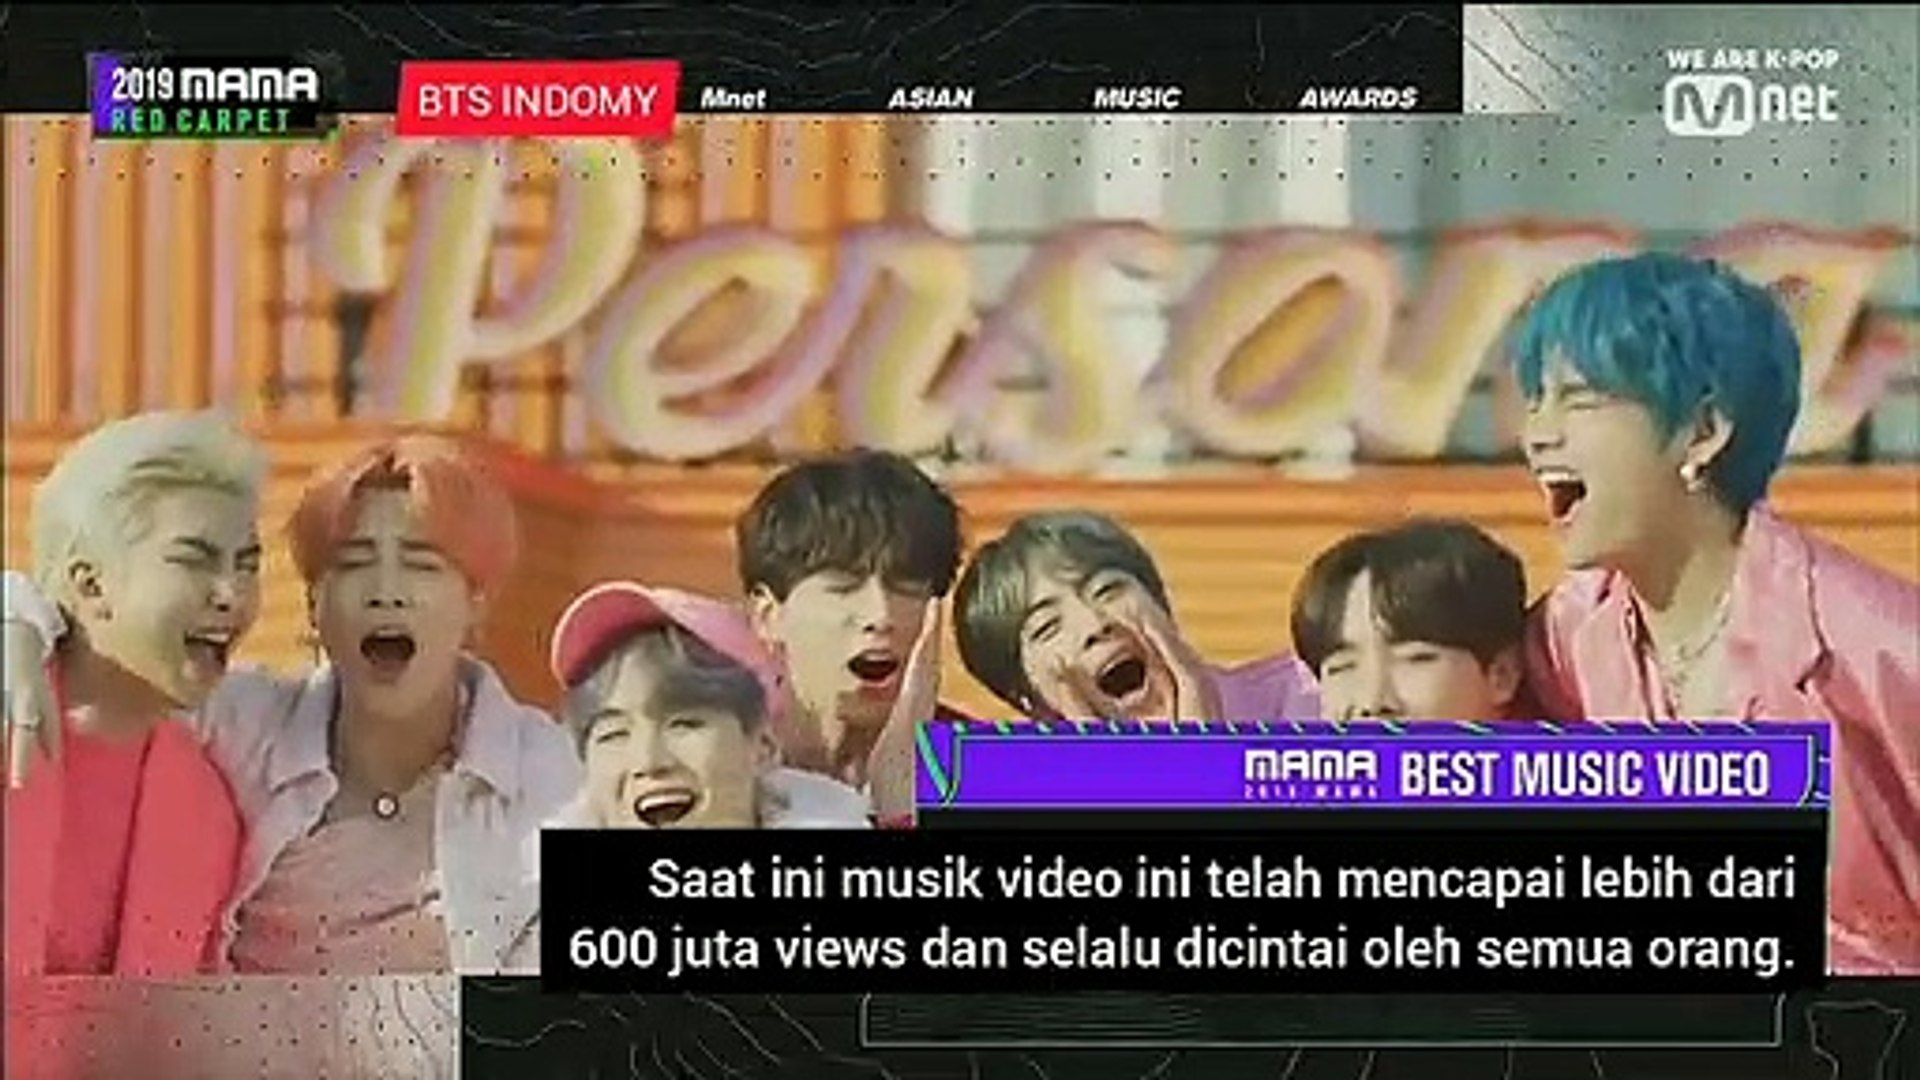 (INDO SUB) MAMA 2019 BEST MUSIC VIDEO BTS BOY WITH LUV